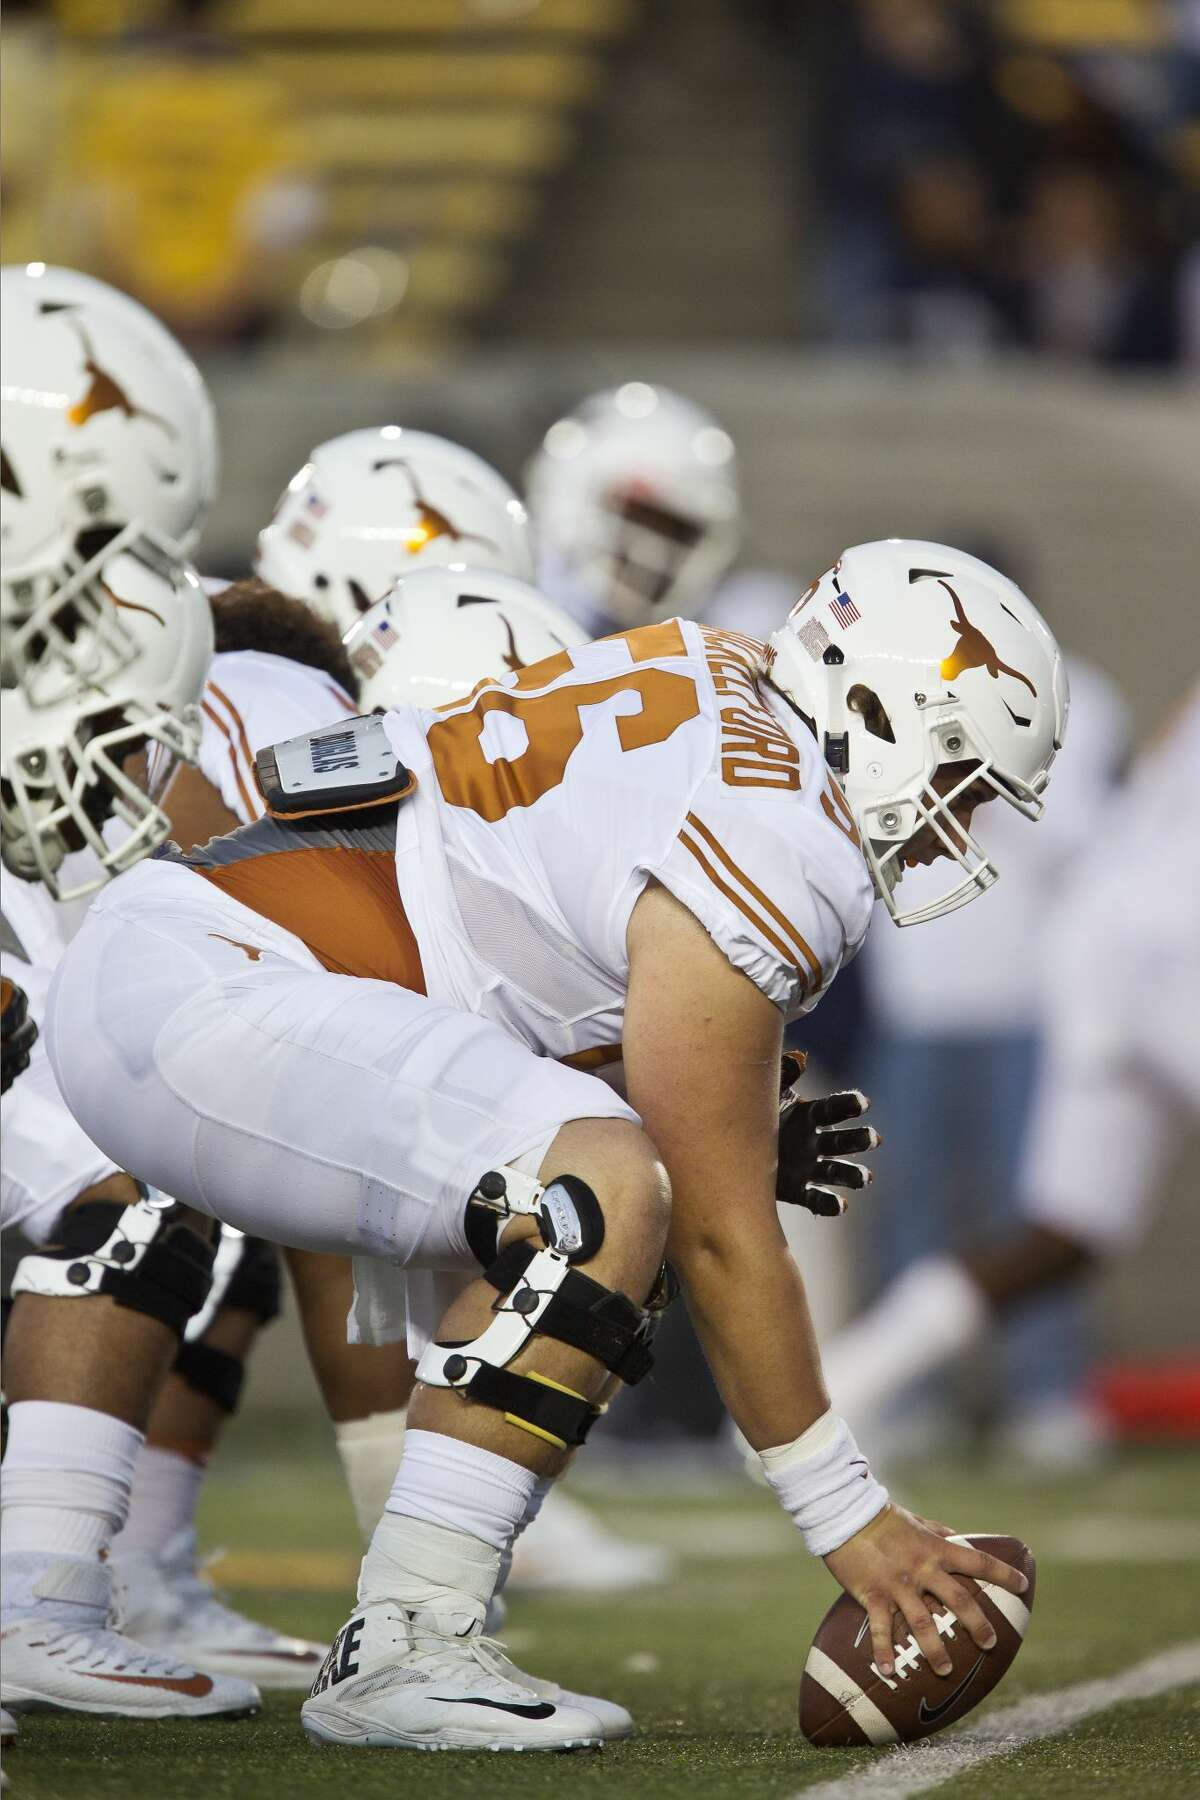 BERKELEY, CA - SEPTEMBER 17: Zach Shackelford #56 of the Texas Longhorns prepares to snap the ball before a game against the California Golden Bears against the Texas Longhorns on September 17, 2016 at California Memorial Stadium in Berkeley, California. Cal won 50-43. (Photo by Brian Bahr/Getty Images)